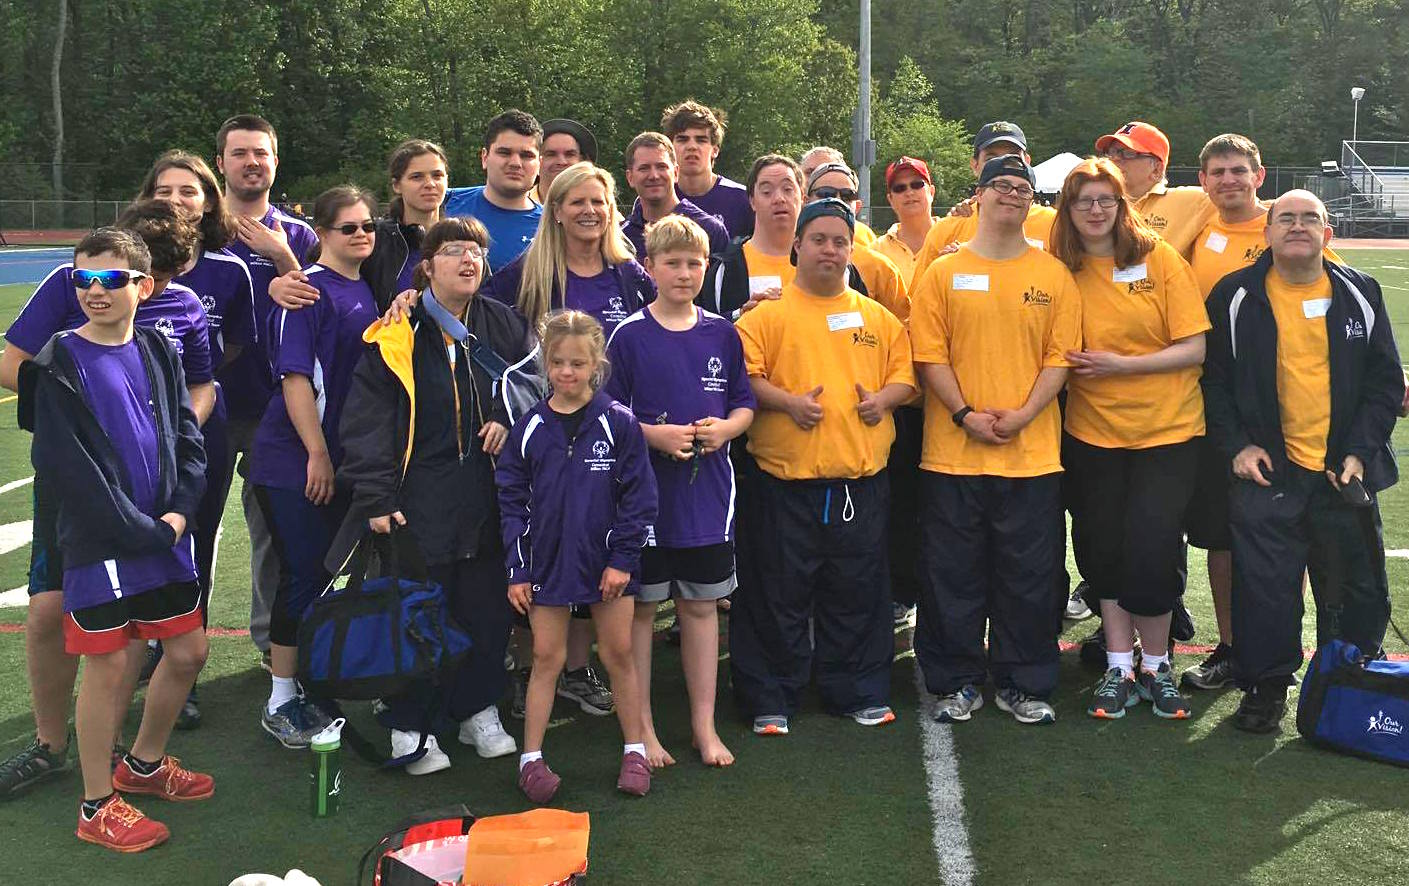 Wilton Family Y Athletes Compete in Special Olympics Time